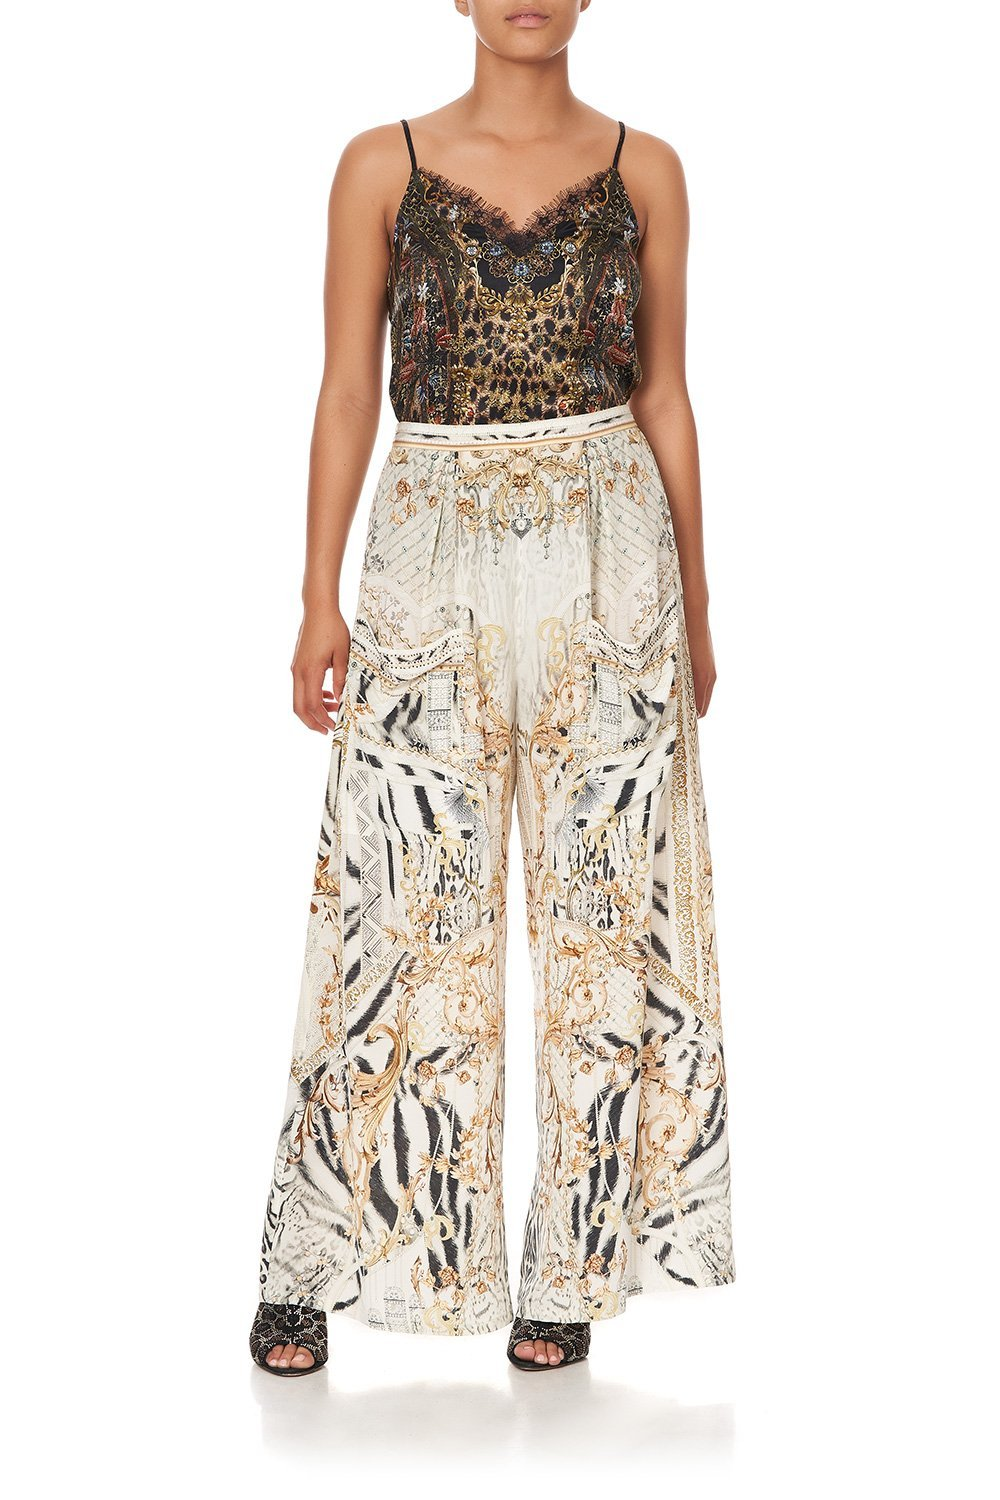 WIDE LEG TROUSER WITH FRONT POCKETS GATES OF GLORY